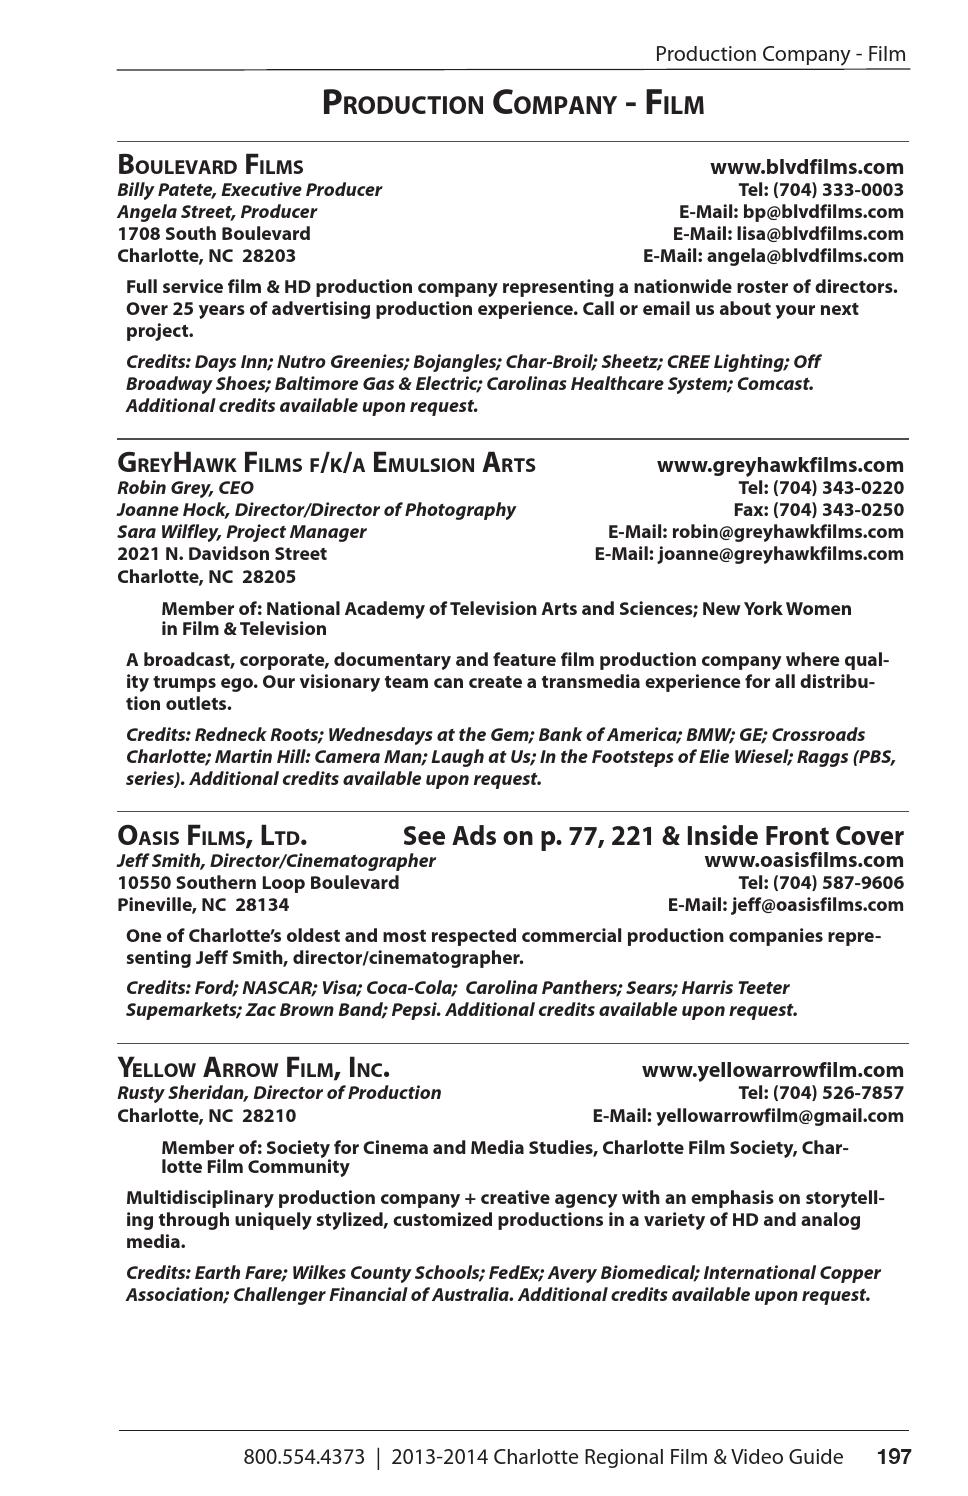 the charlotte regional film video guide 2013 2014 by oz the charlotte regional film video guide 2013 2014 by oz publishing inc page 197 issuu